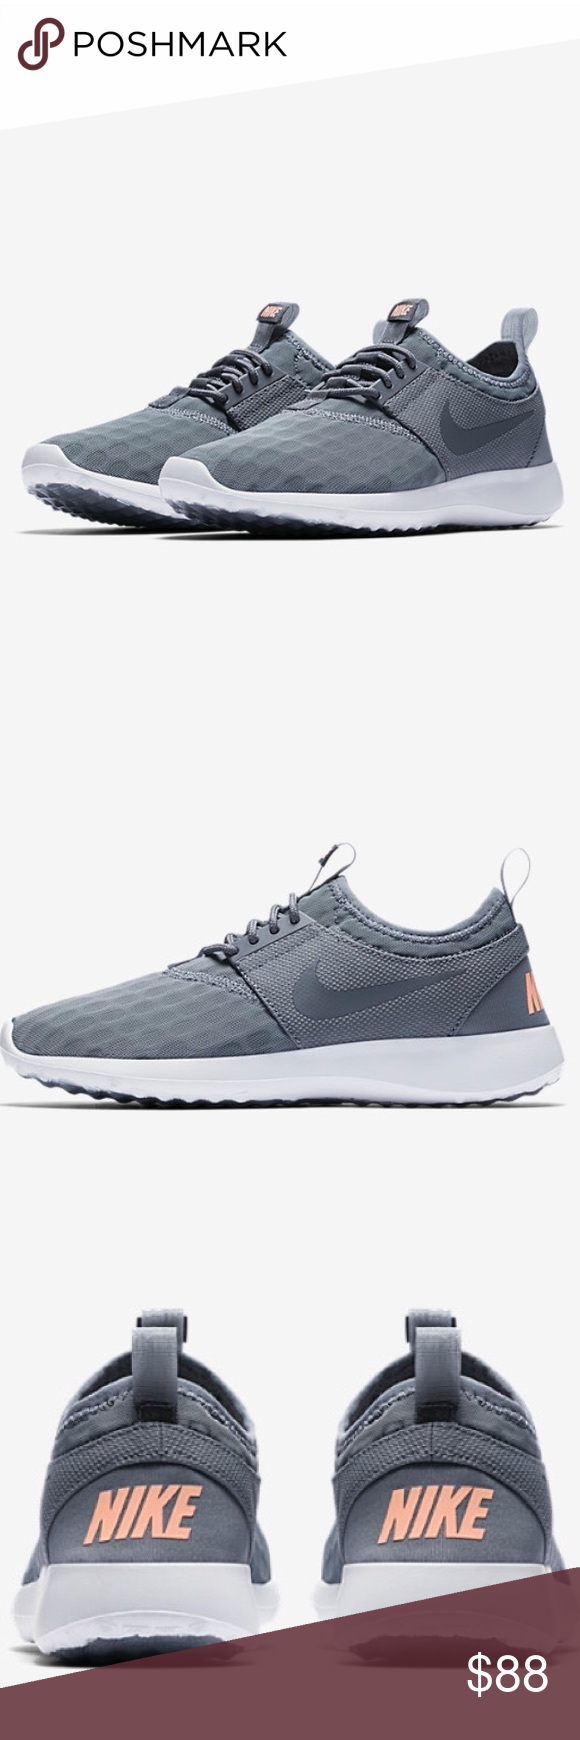 Nike Juvenate Brand new still in boxes. Women's sizing. Multiple sizes available Nike Shoes